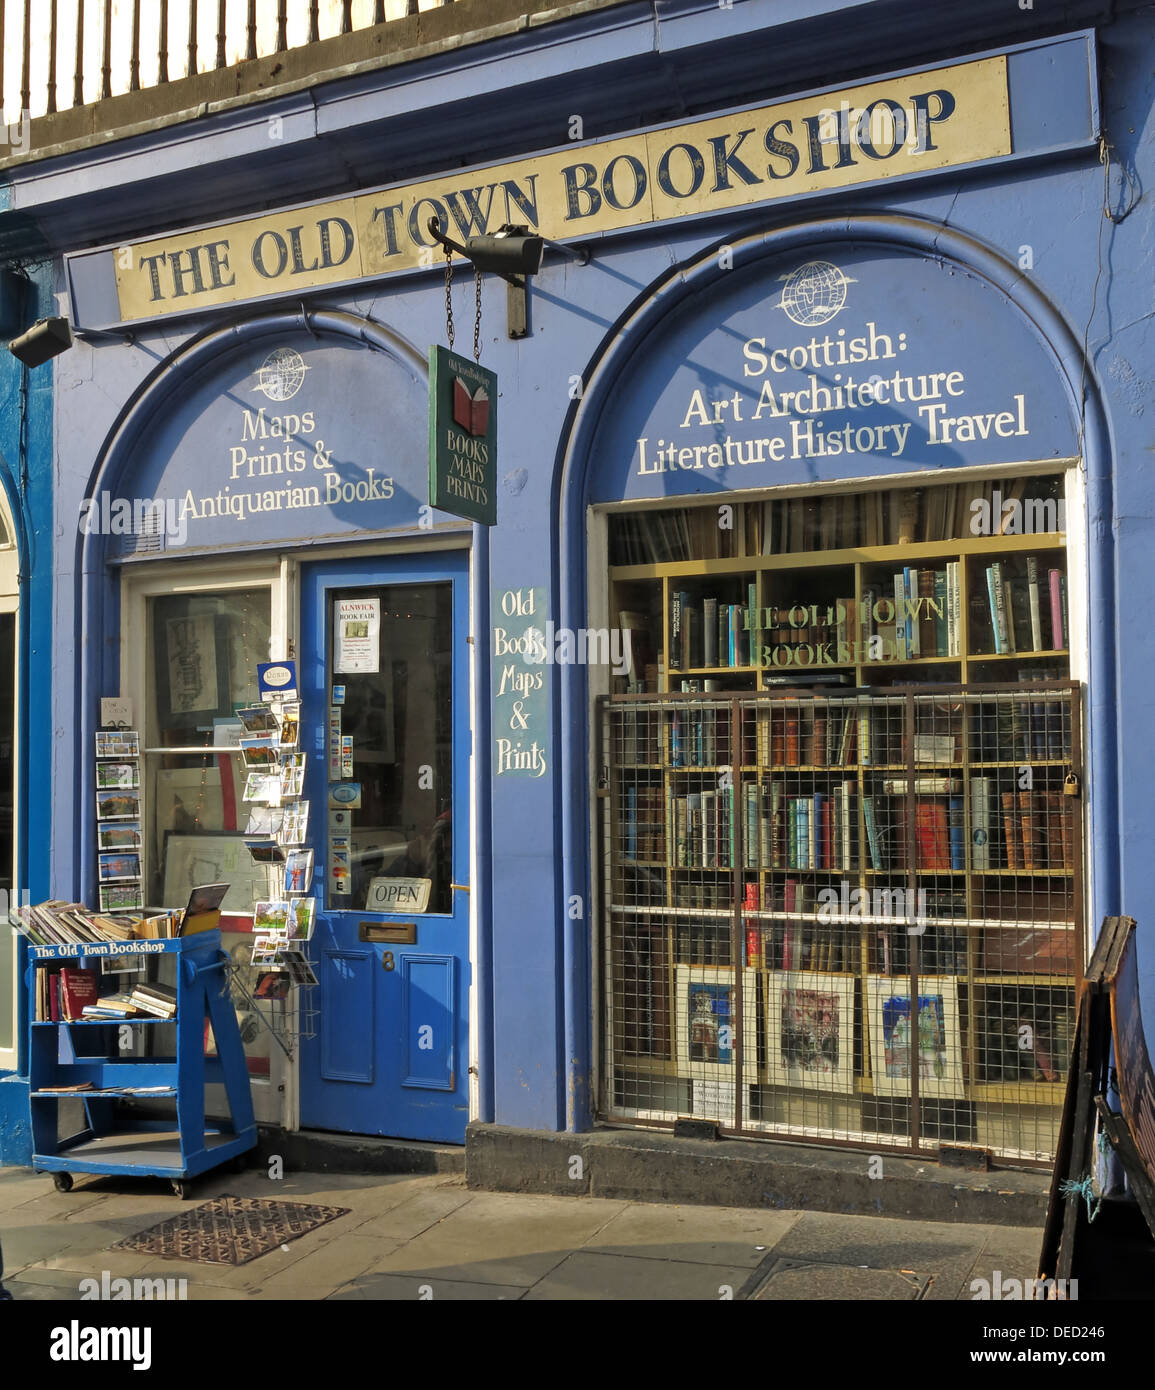 The old town bookshop Victoria Street Edinburgh Scotland UK Stock Photo